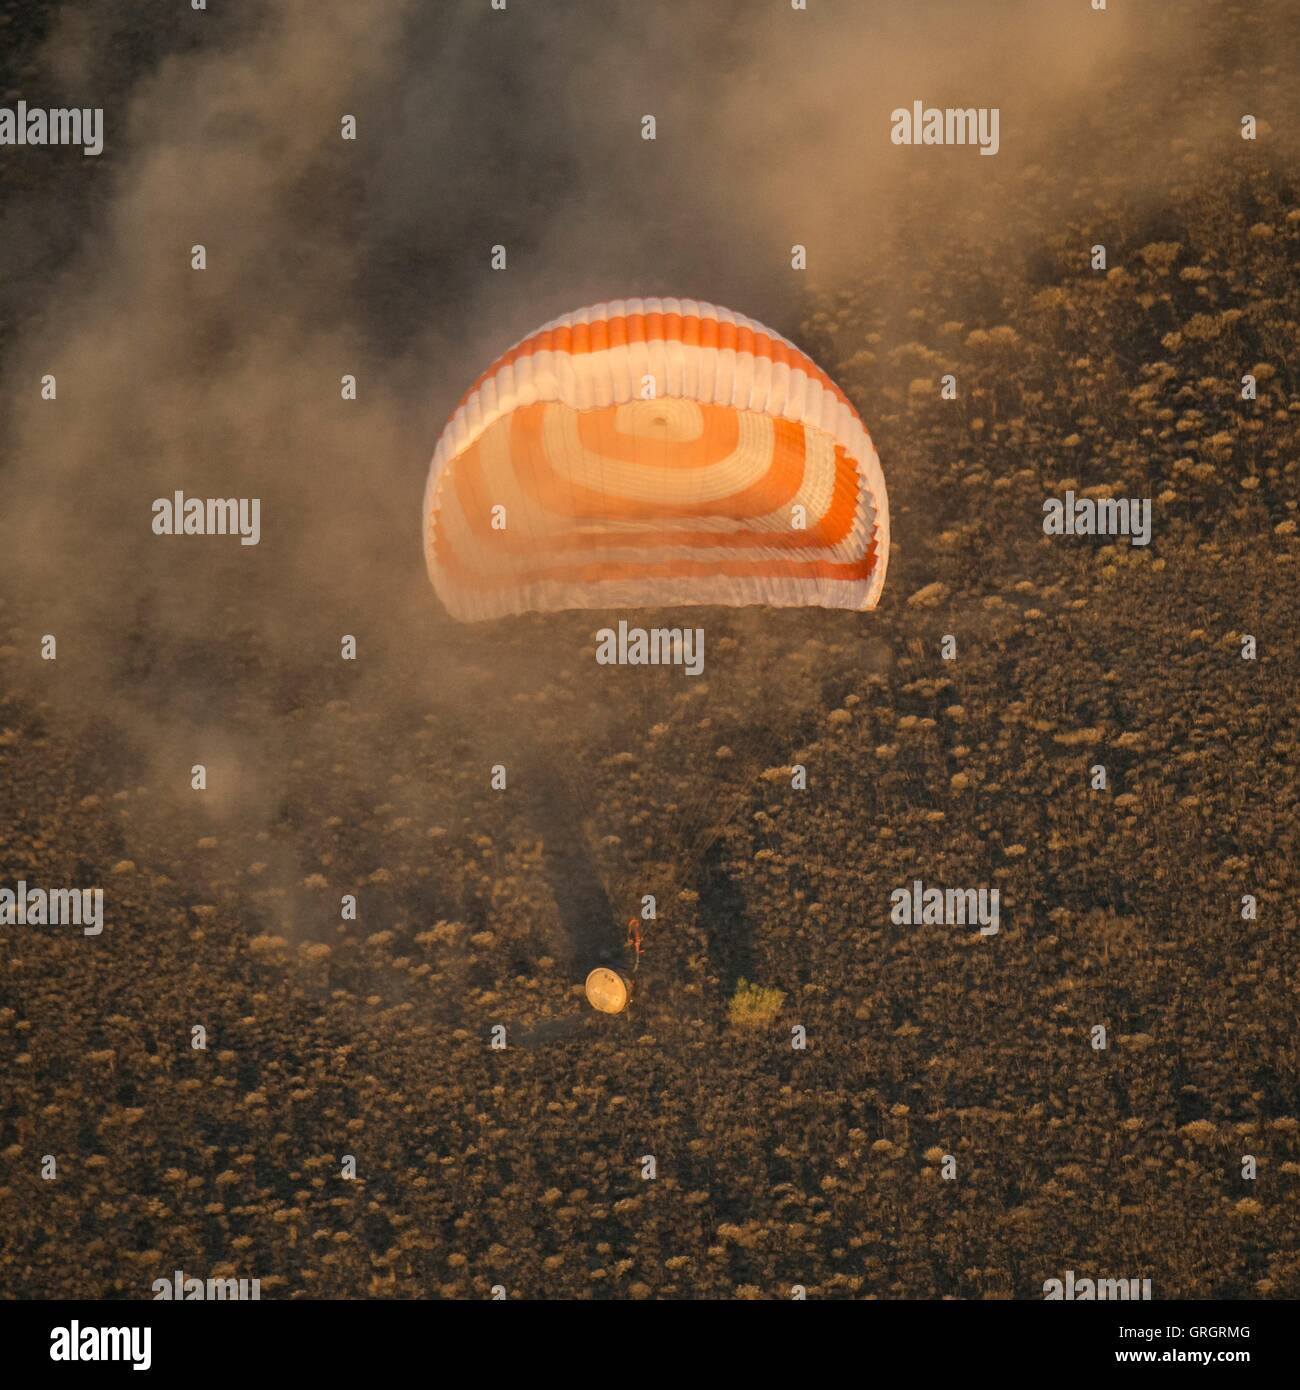 International Space Station crew from Expedition 48 touches down aboard the Russian Soyuz TMA-20M spacecraft to Stock Photo